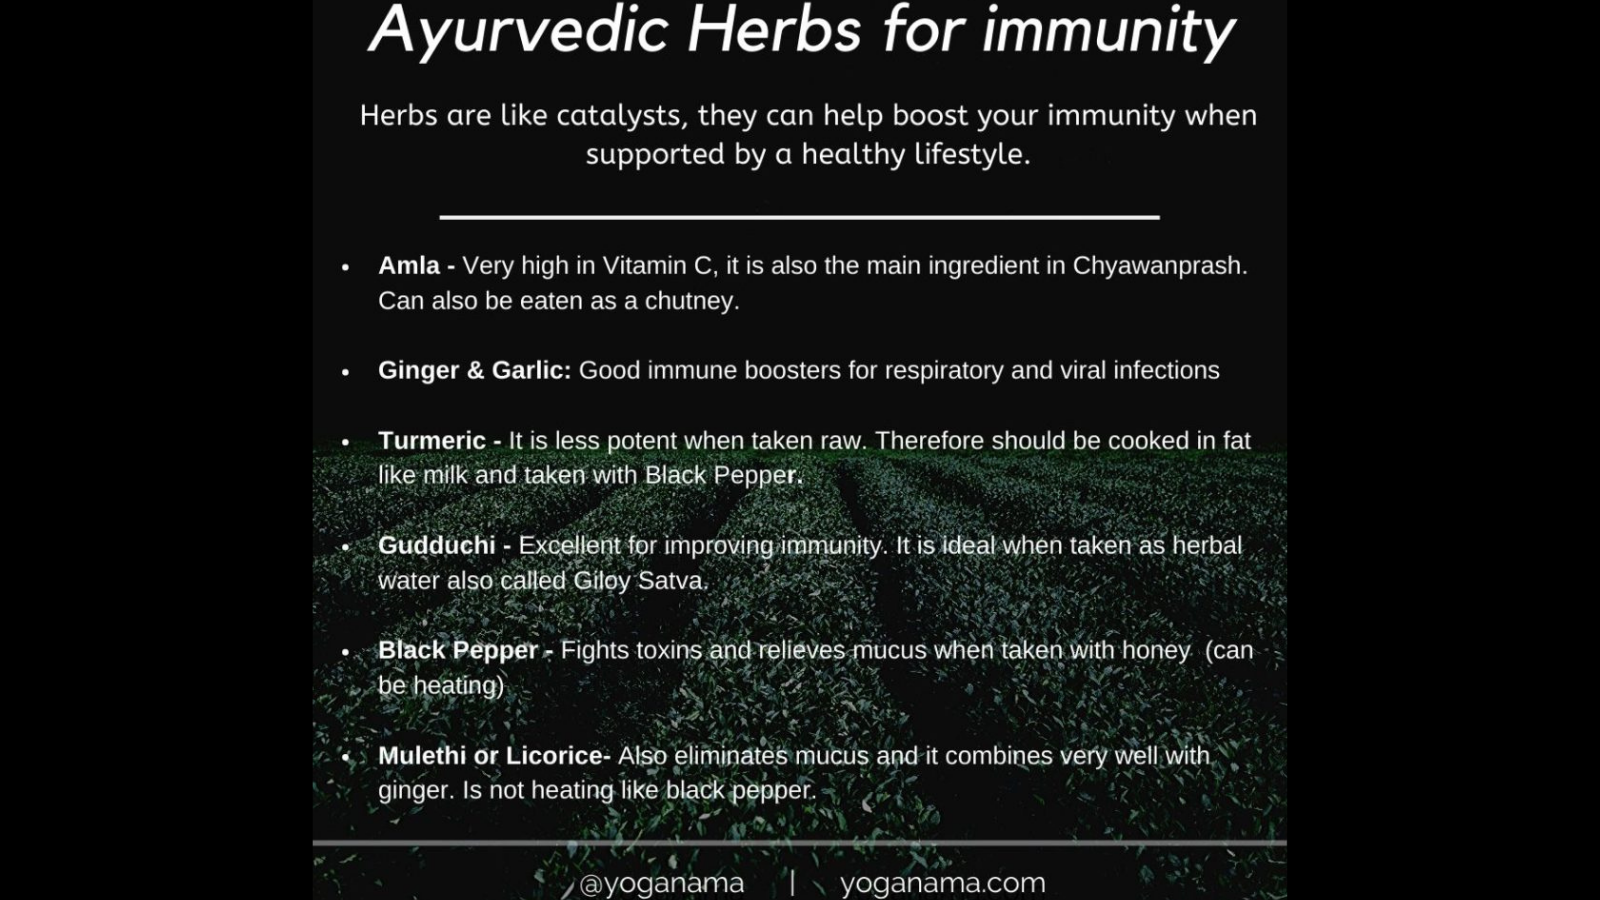 Beginners tips for Ayurvedic herbs to build stronger immunity